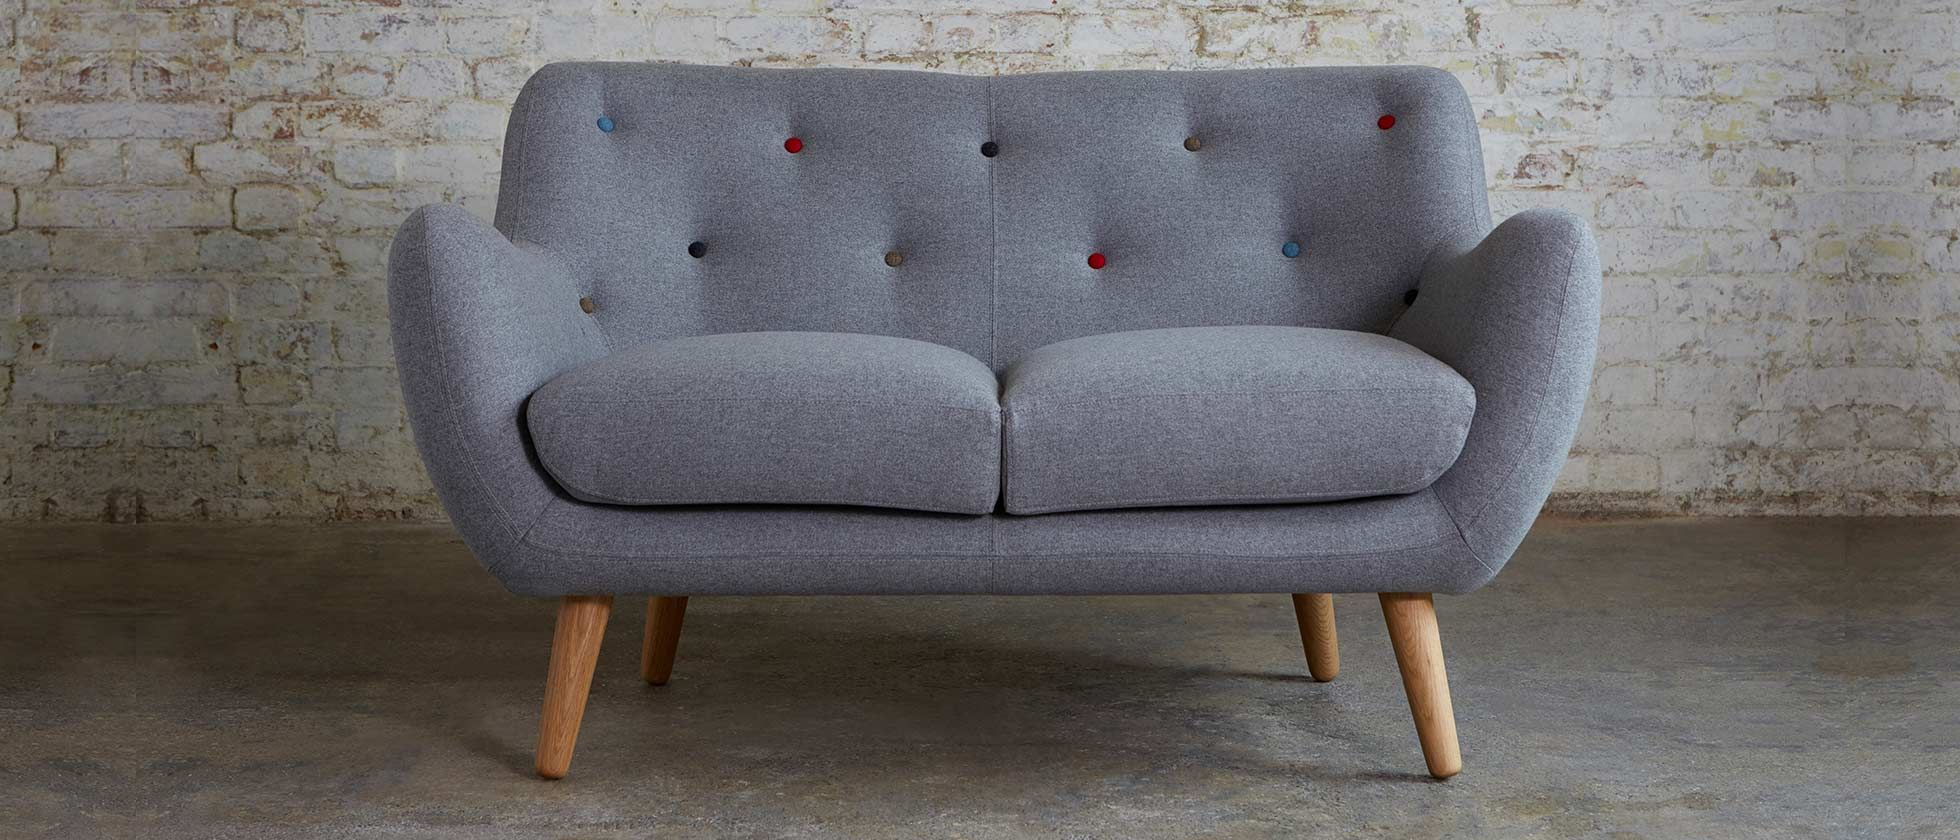 Modern Sofas Online 7 Day Quick Delivery Uk